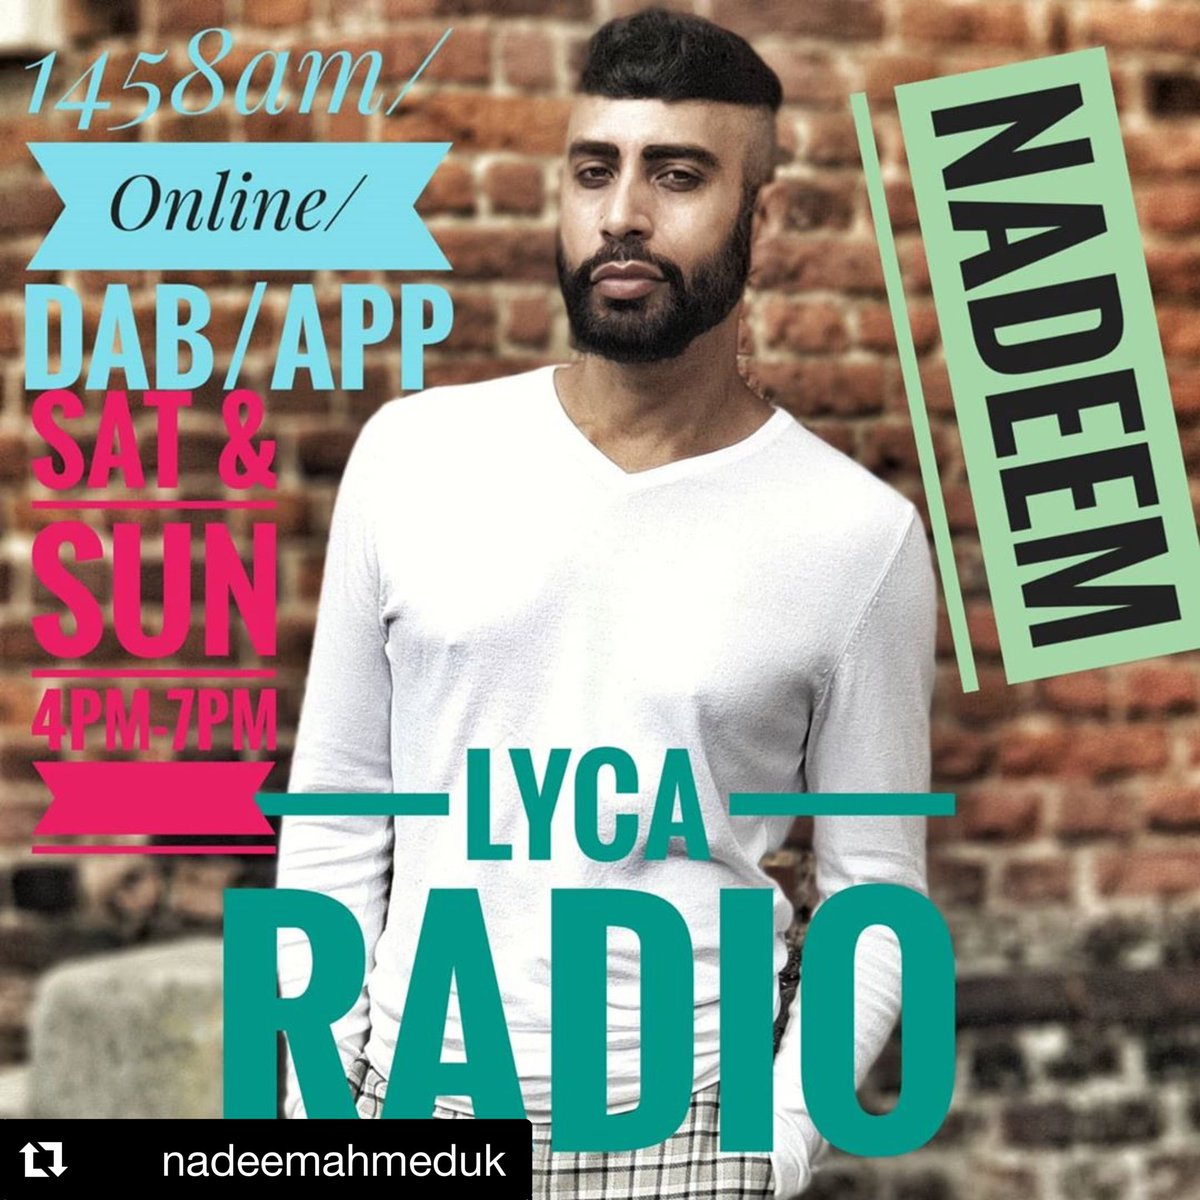 Lyca  Sunday is Funday! @NadeemAhmedUK   Join me today #lycaradio 4pm-7pm UK Time on -  1458am/Online/DAB/Phone App.  Miss it! Miss out!  #radio #presenter #host #arabic #spanish #worldmusic #dance #globalsounds #weekend #bollywoodmusic #arabicmusic #dance #bollywood #remixespic.twitter.com/SnbztCpoFu